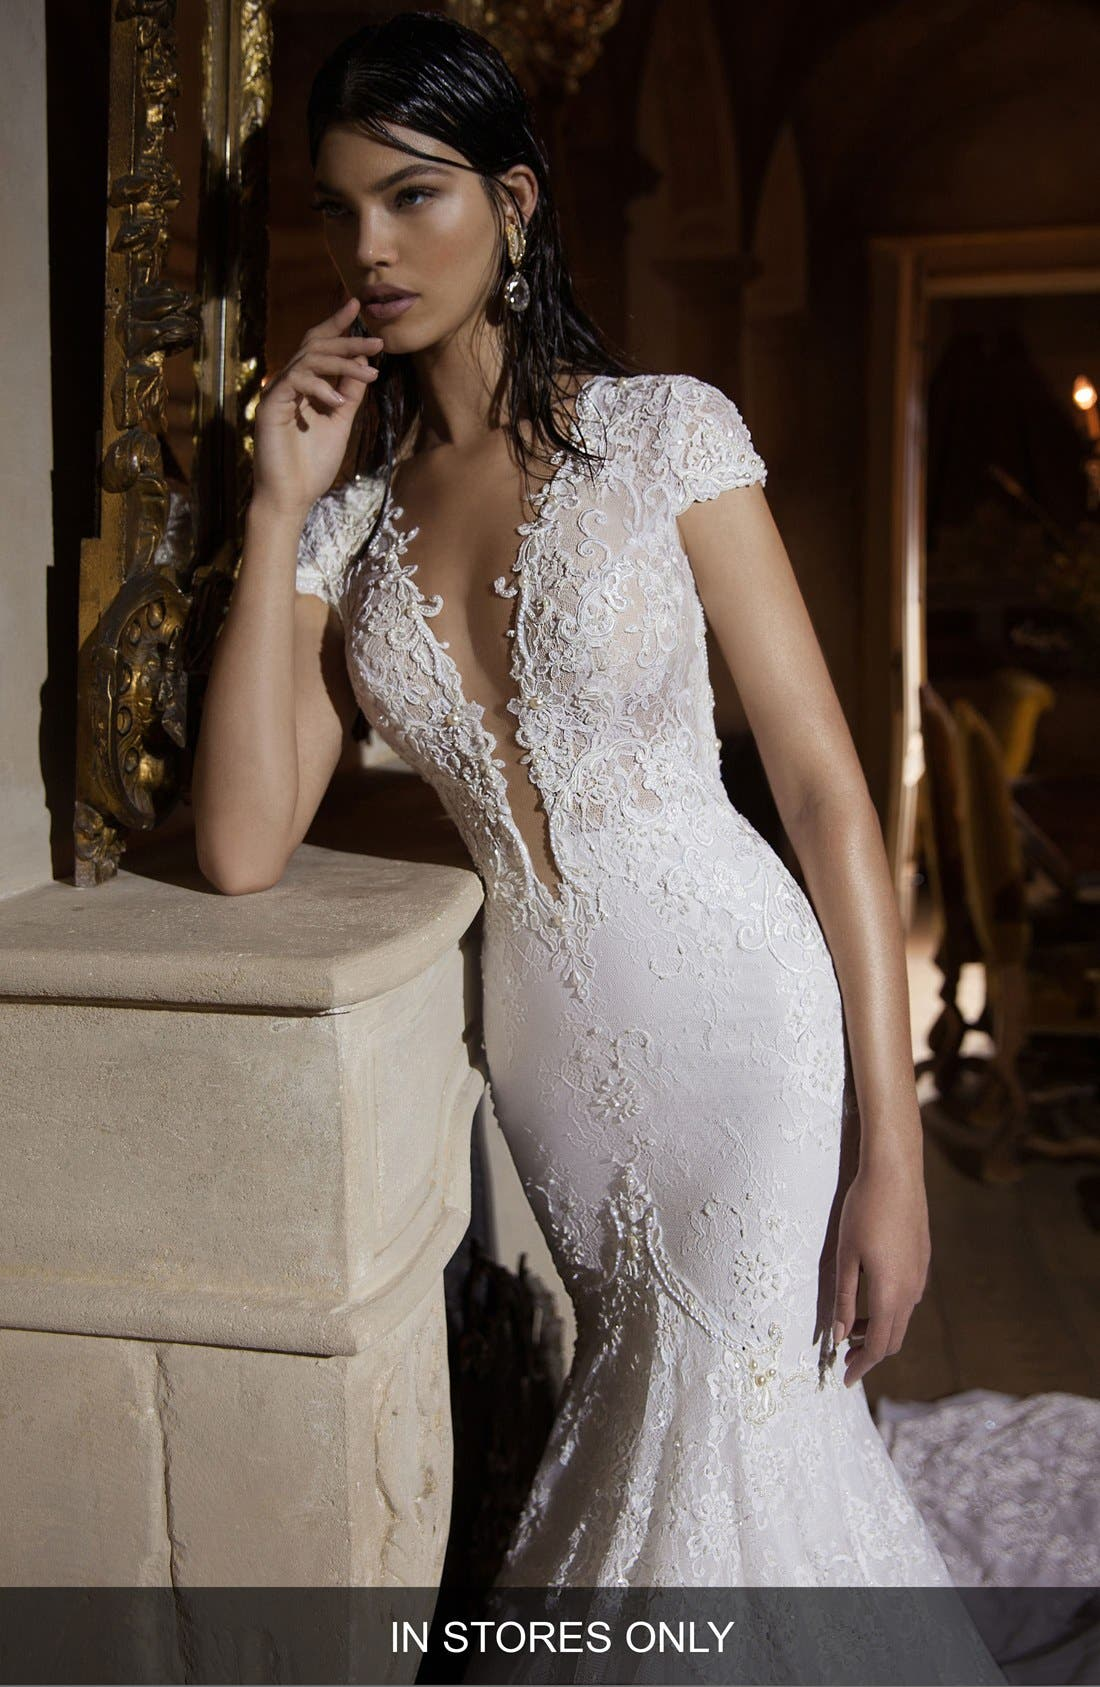 Plunging V-Neck Cap Sleeve Lace Mermaid Gown,                             Main thumbnail 1, color,                             100